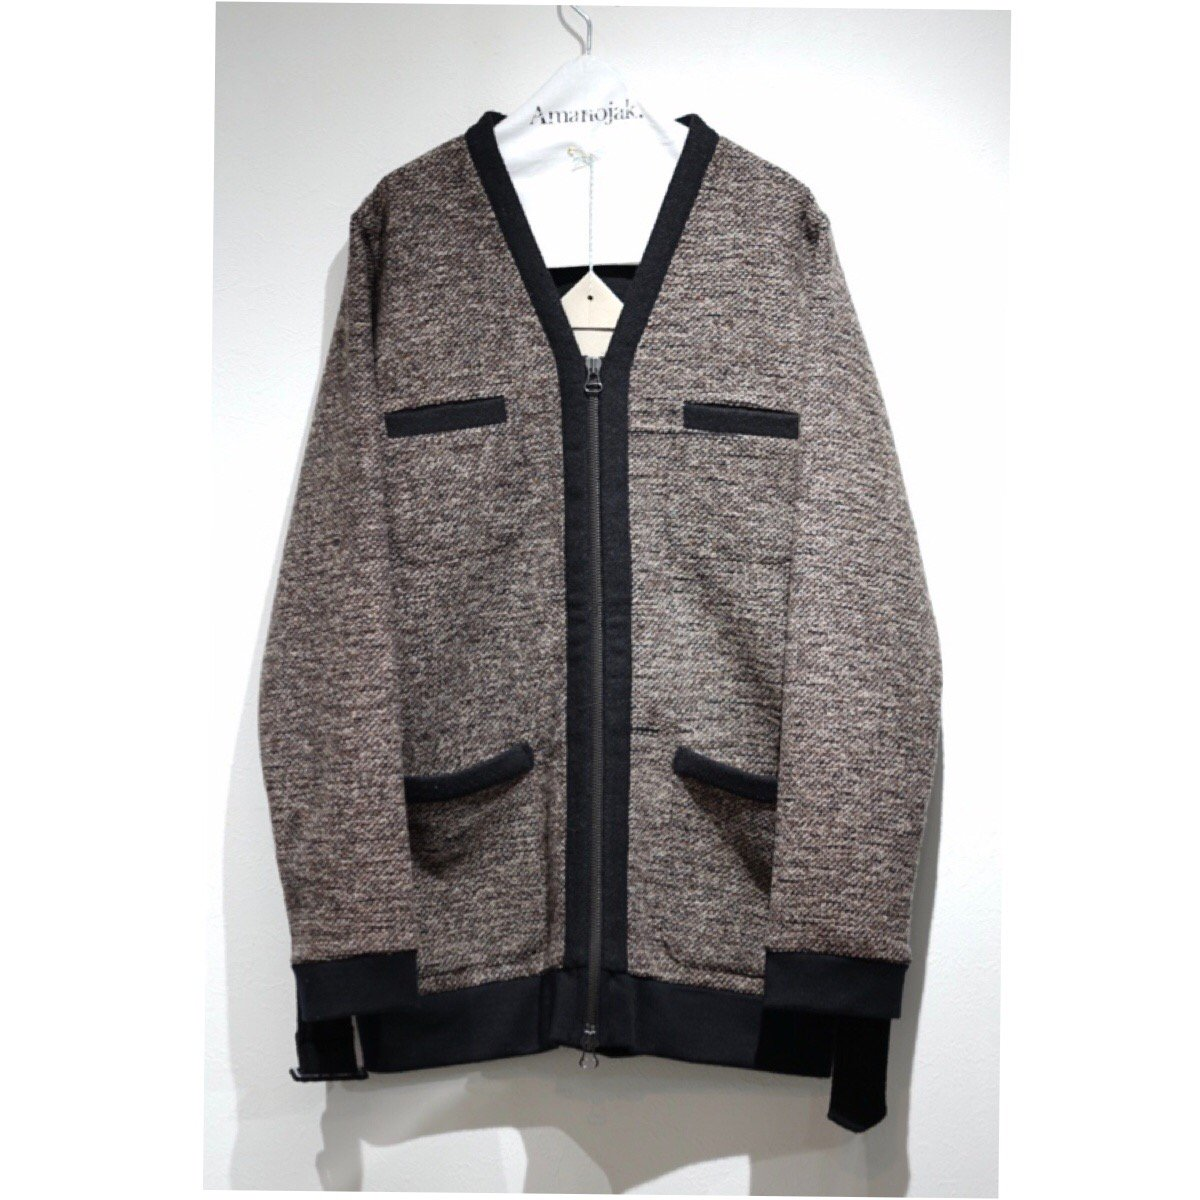 FRANK LEDER-WEAVED WOOL ZIP CARDIGAN